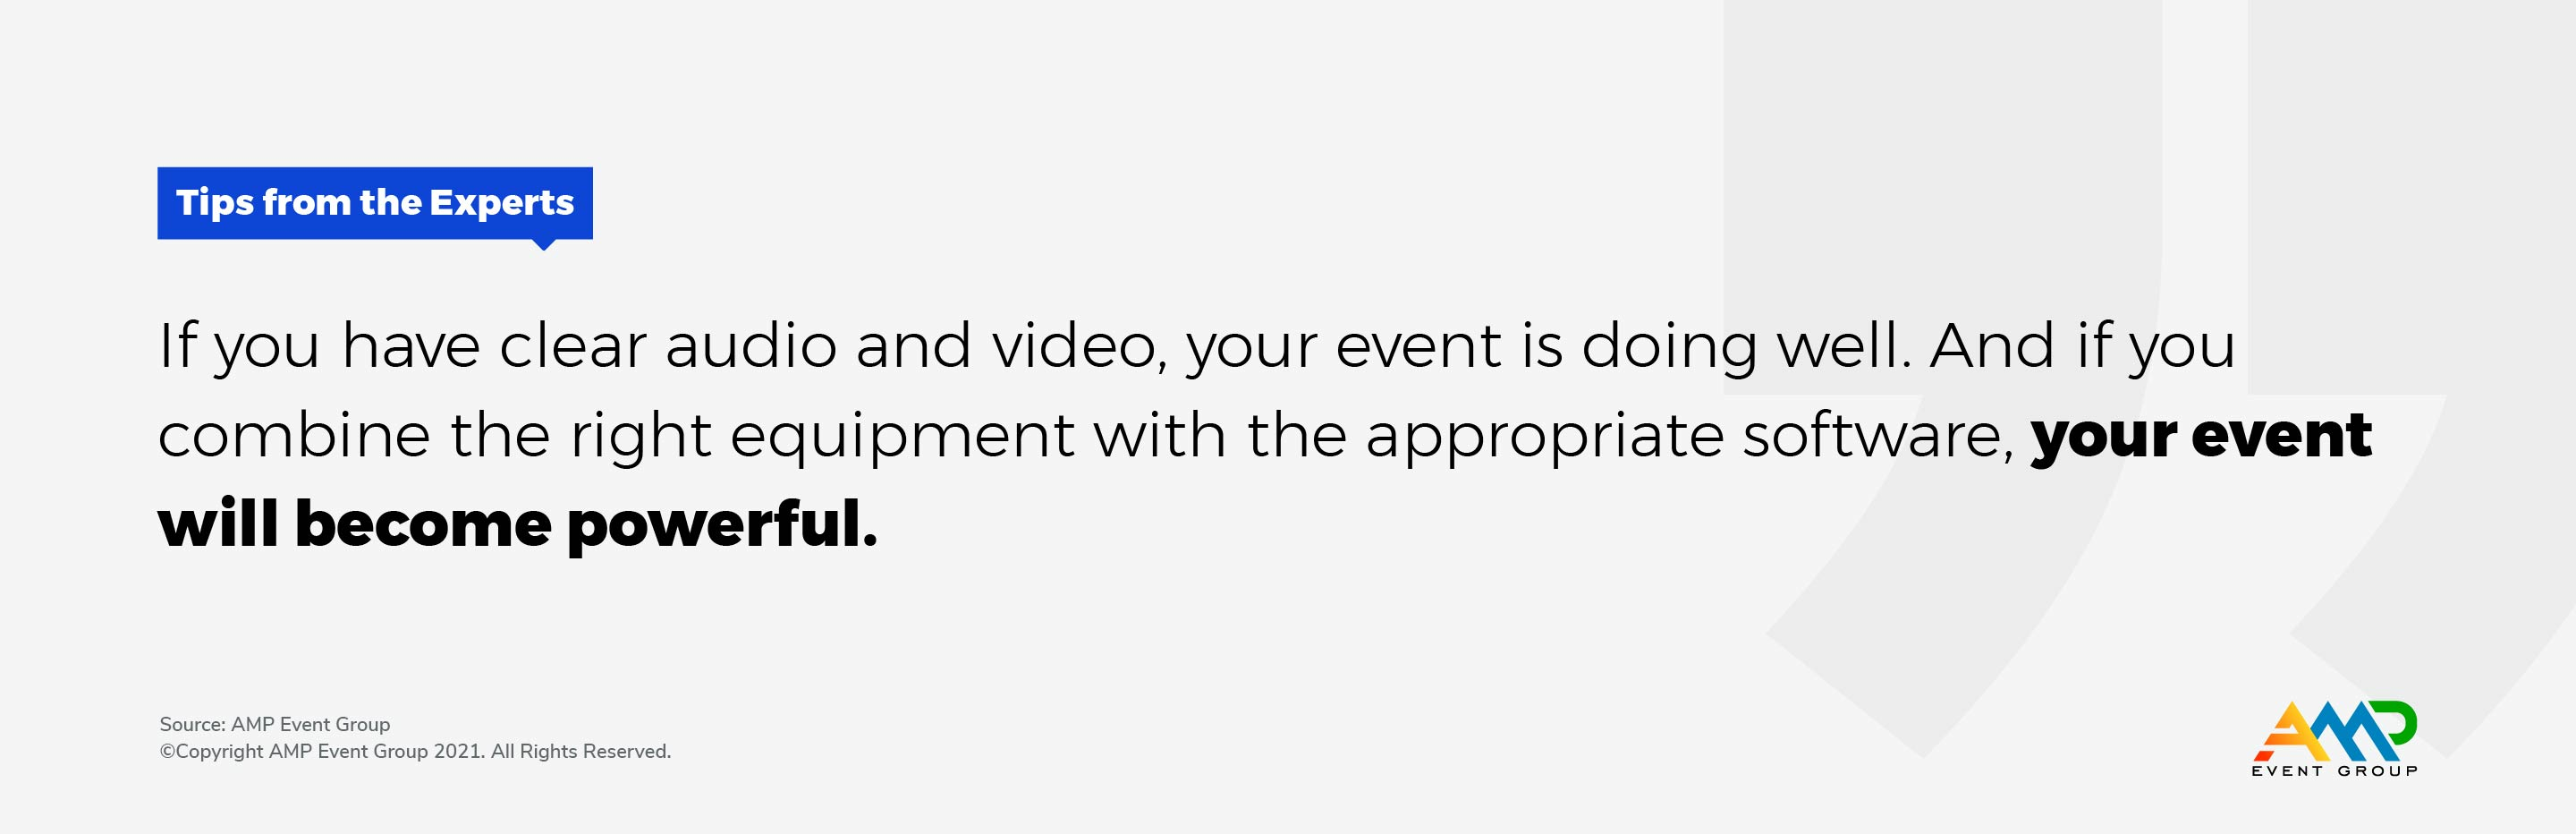 Clear audio and video combined with the right software are the keys to a powerfully engaging virtual event.